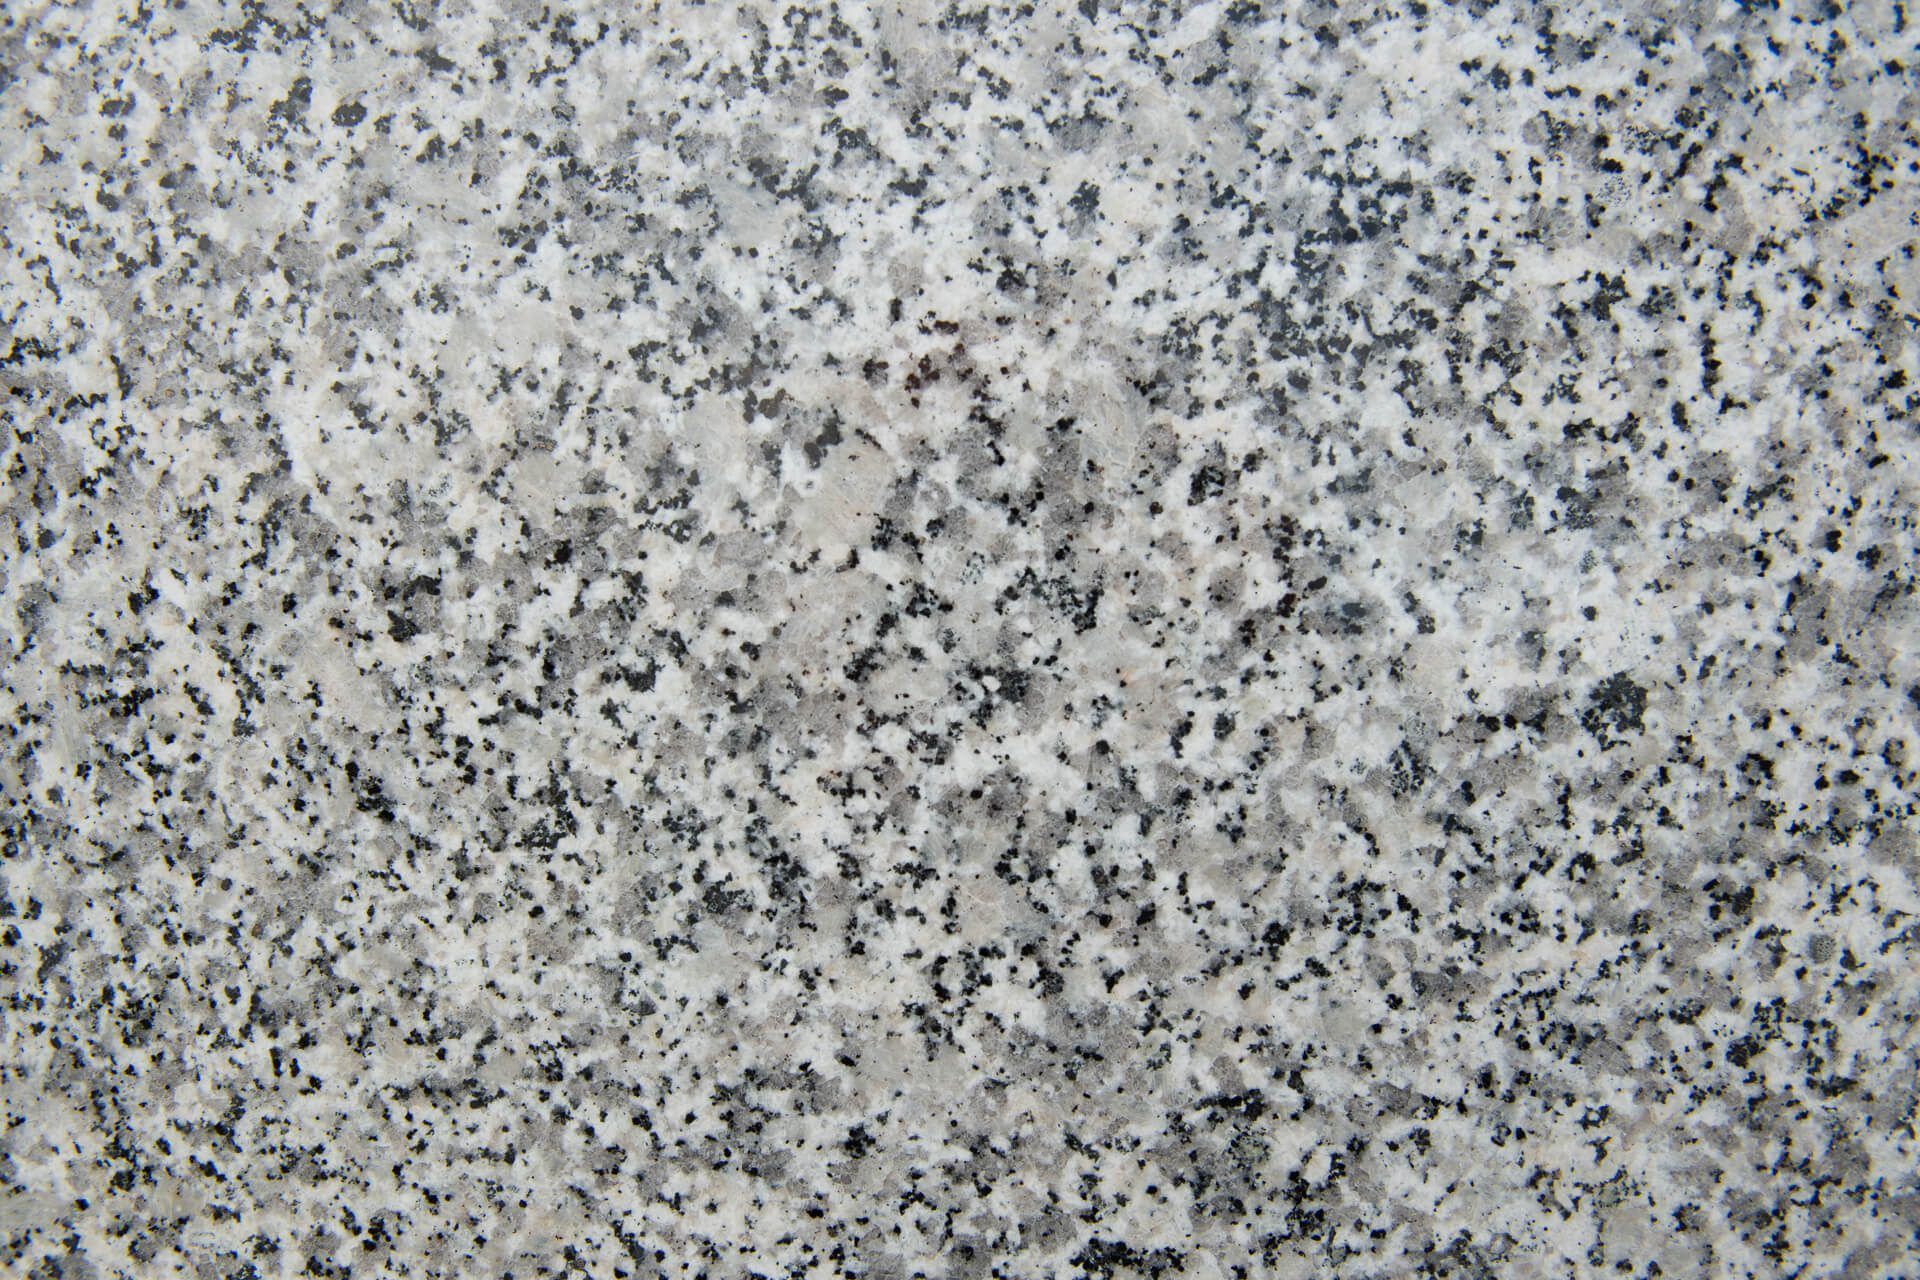 luna pearl 2 cu 1 countertops for Crossville and Cookeville TN